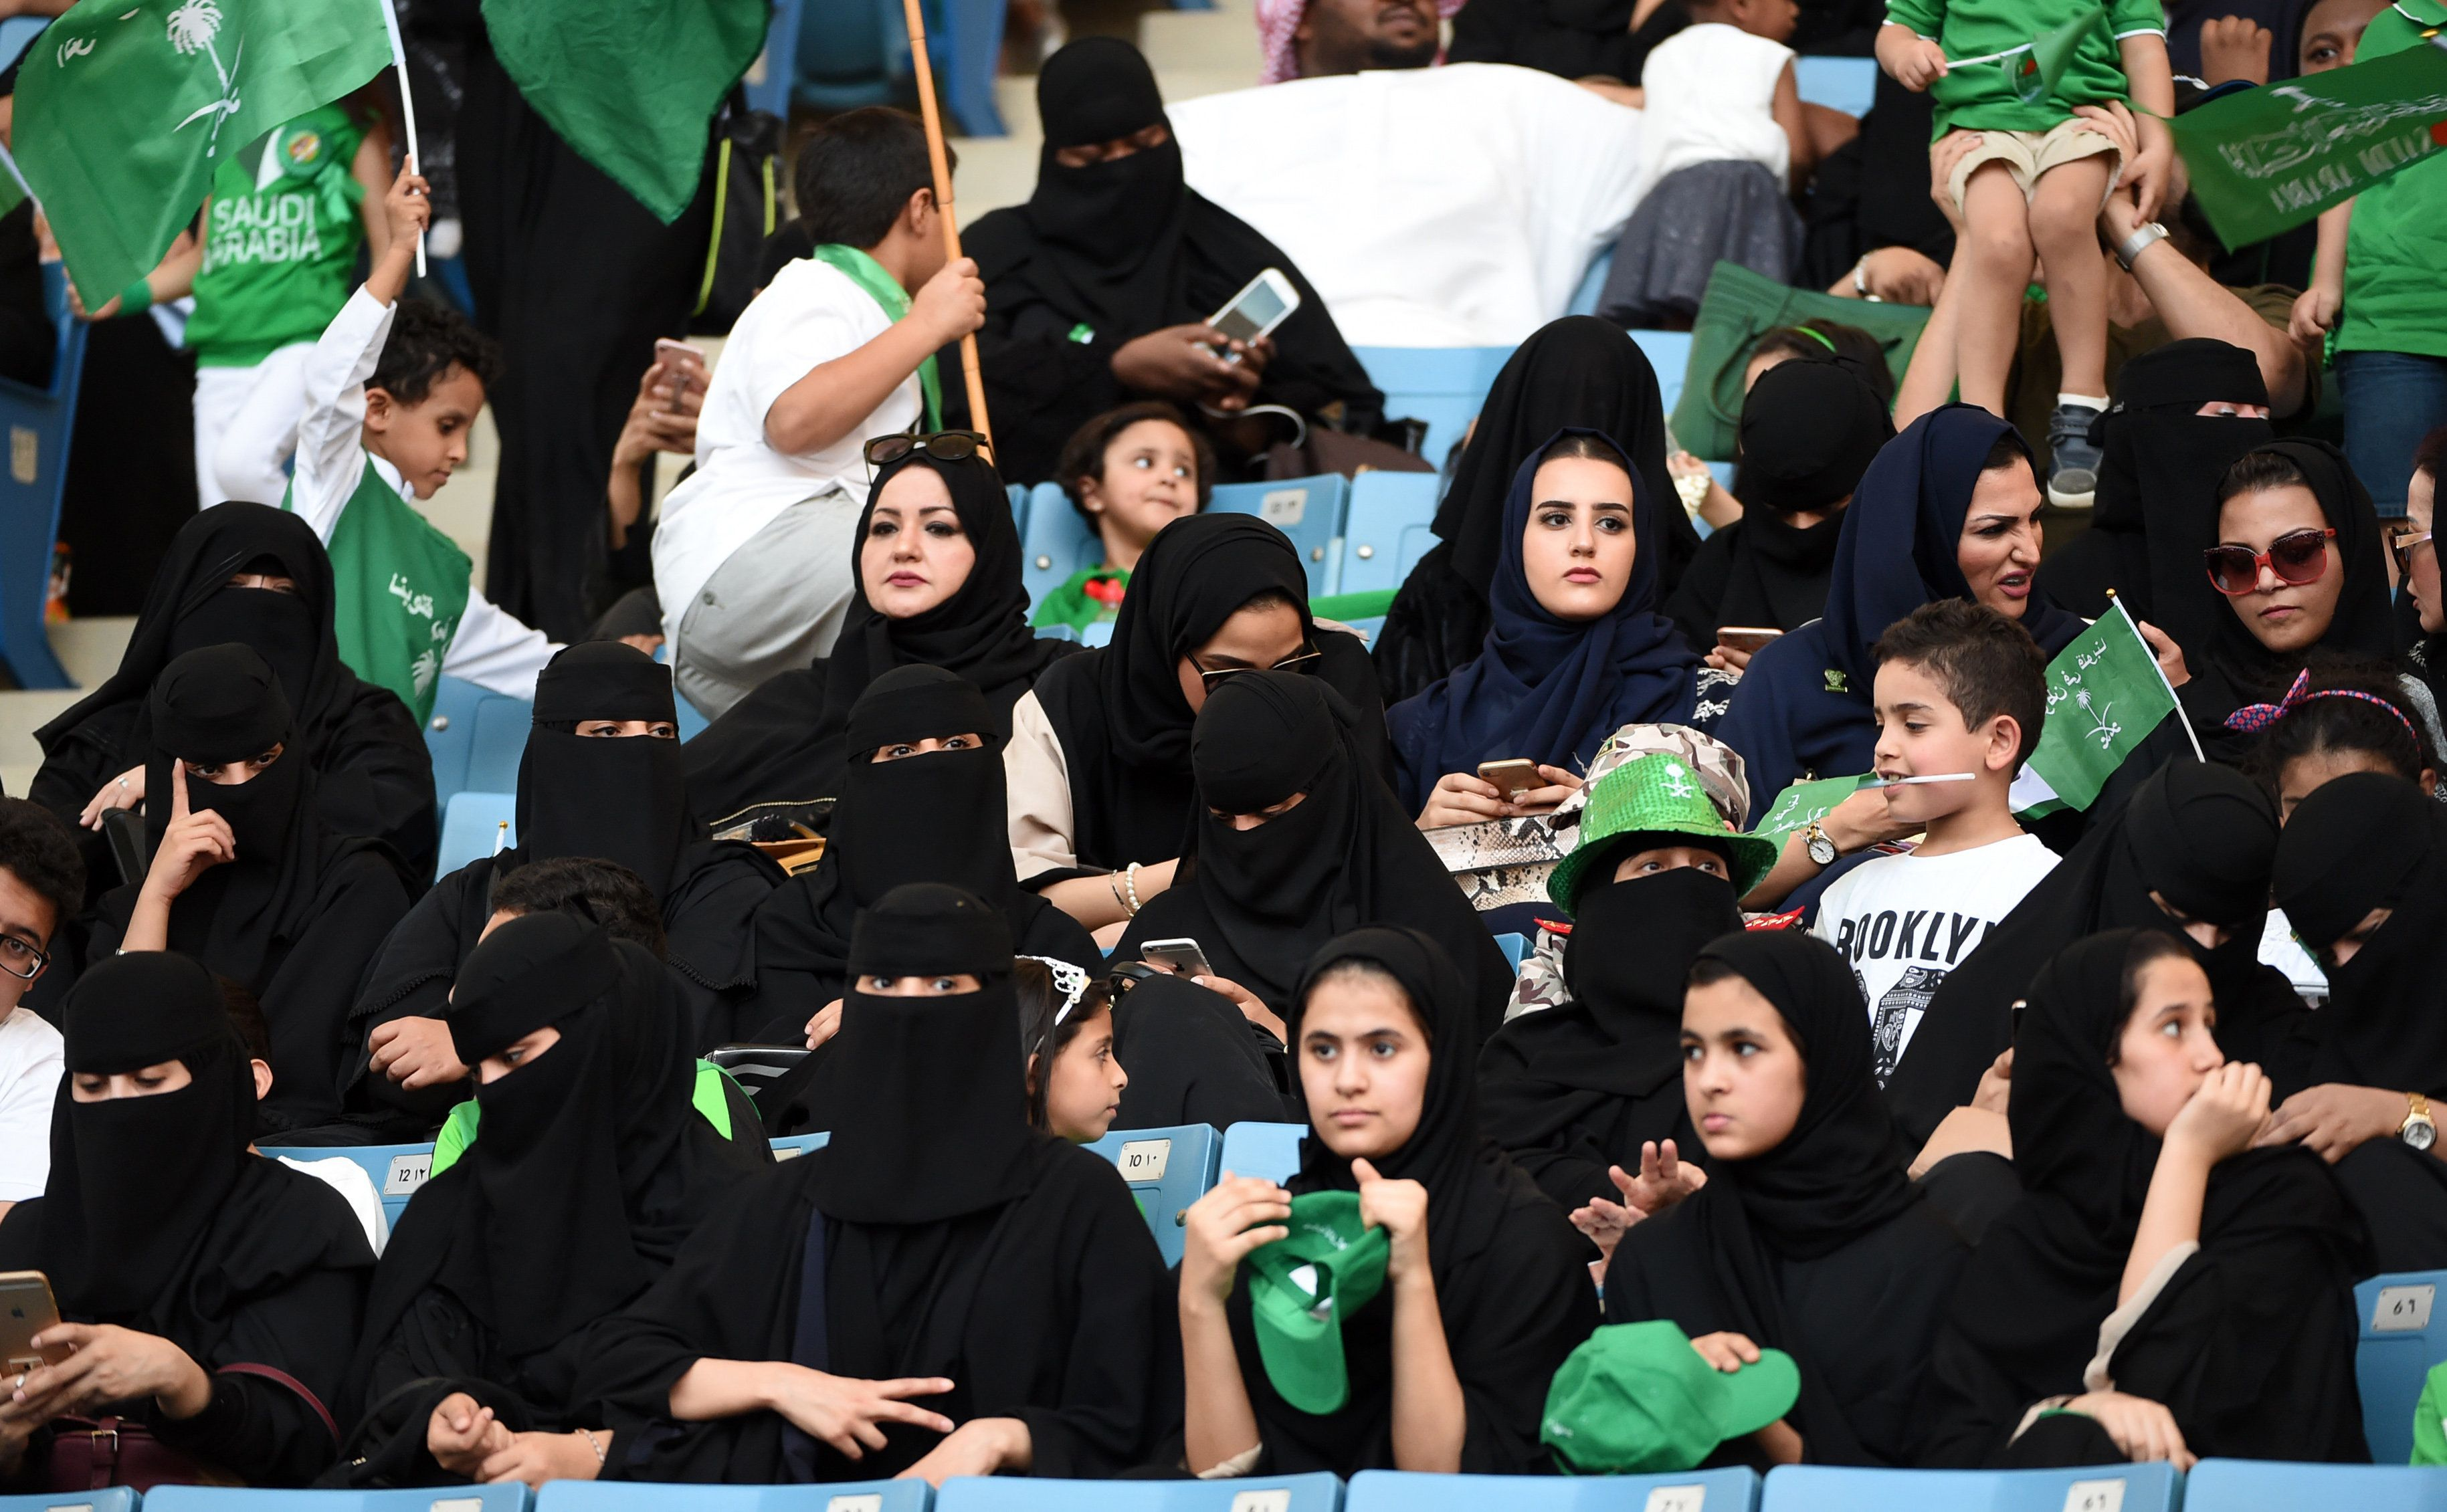 Saudi Arabia to allow entry of women in sports stadium